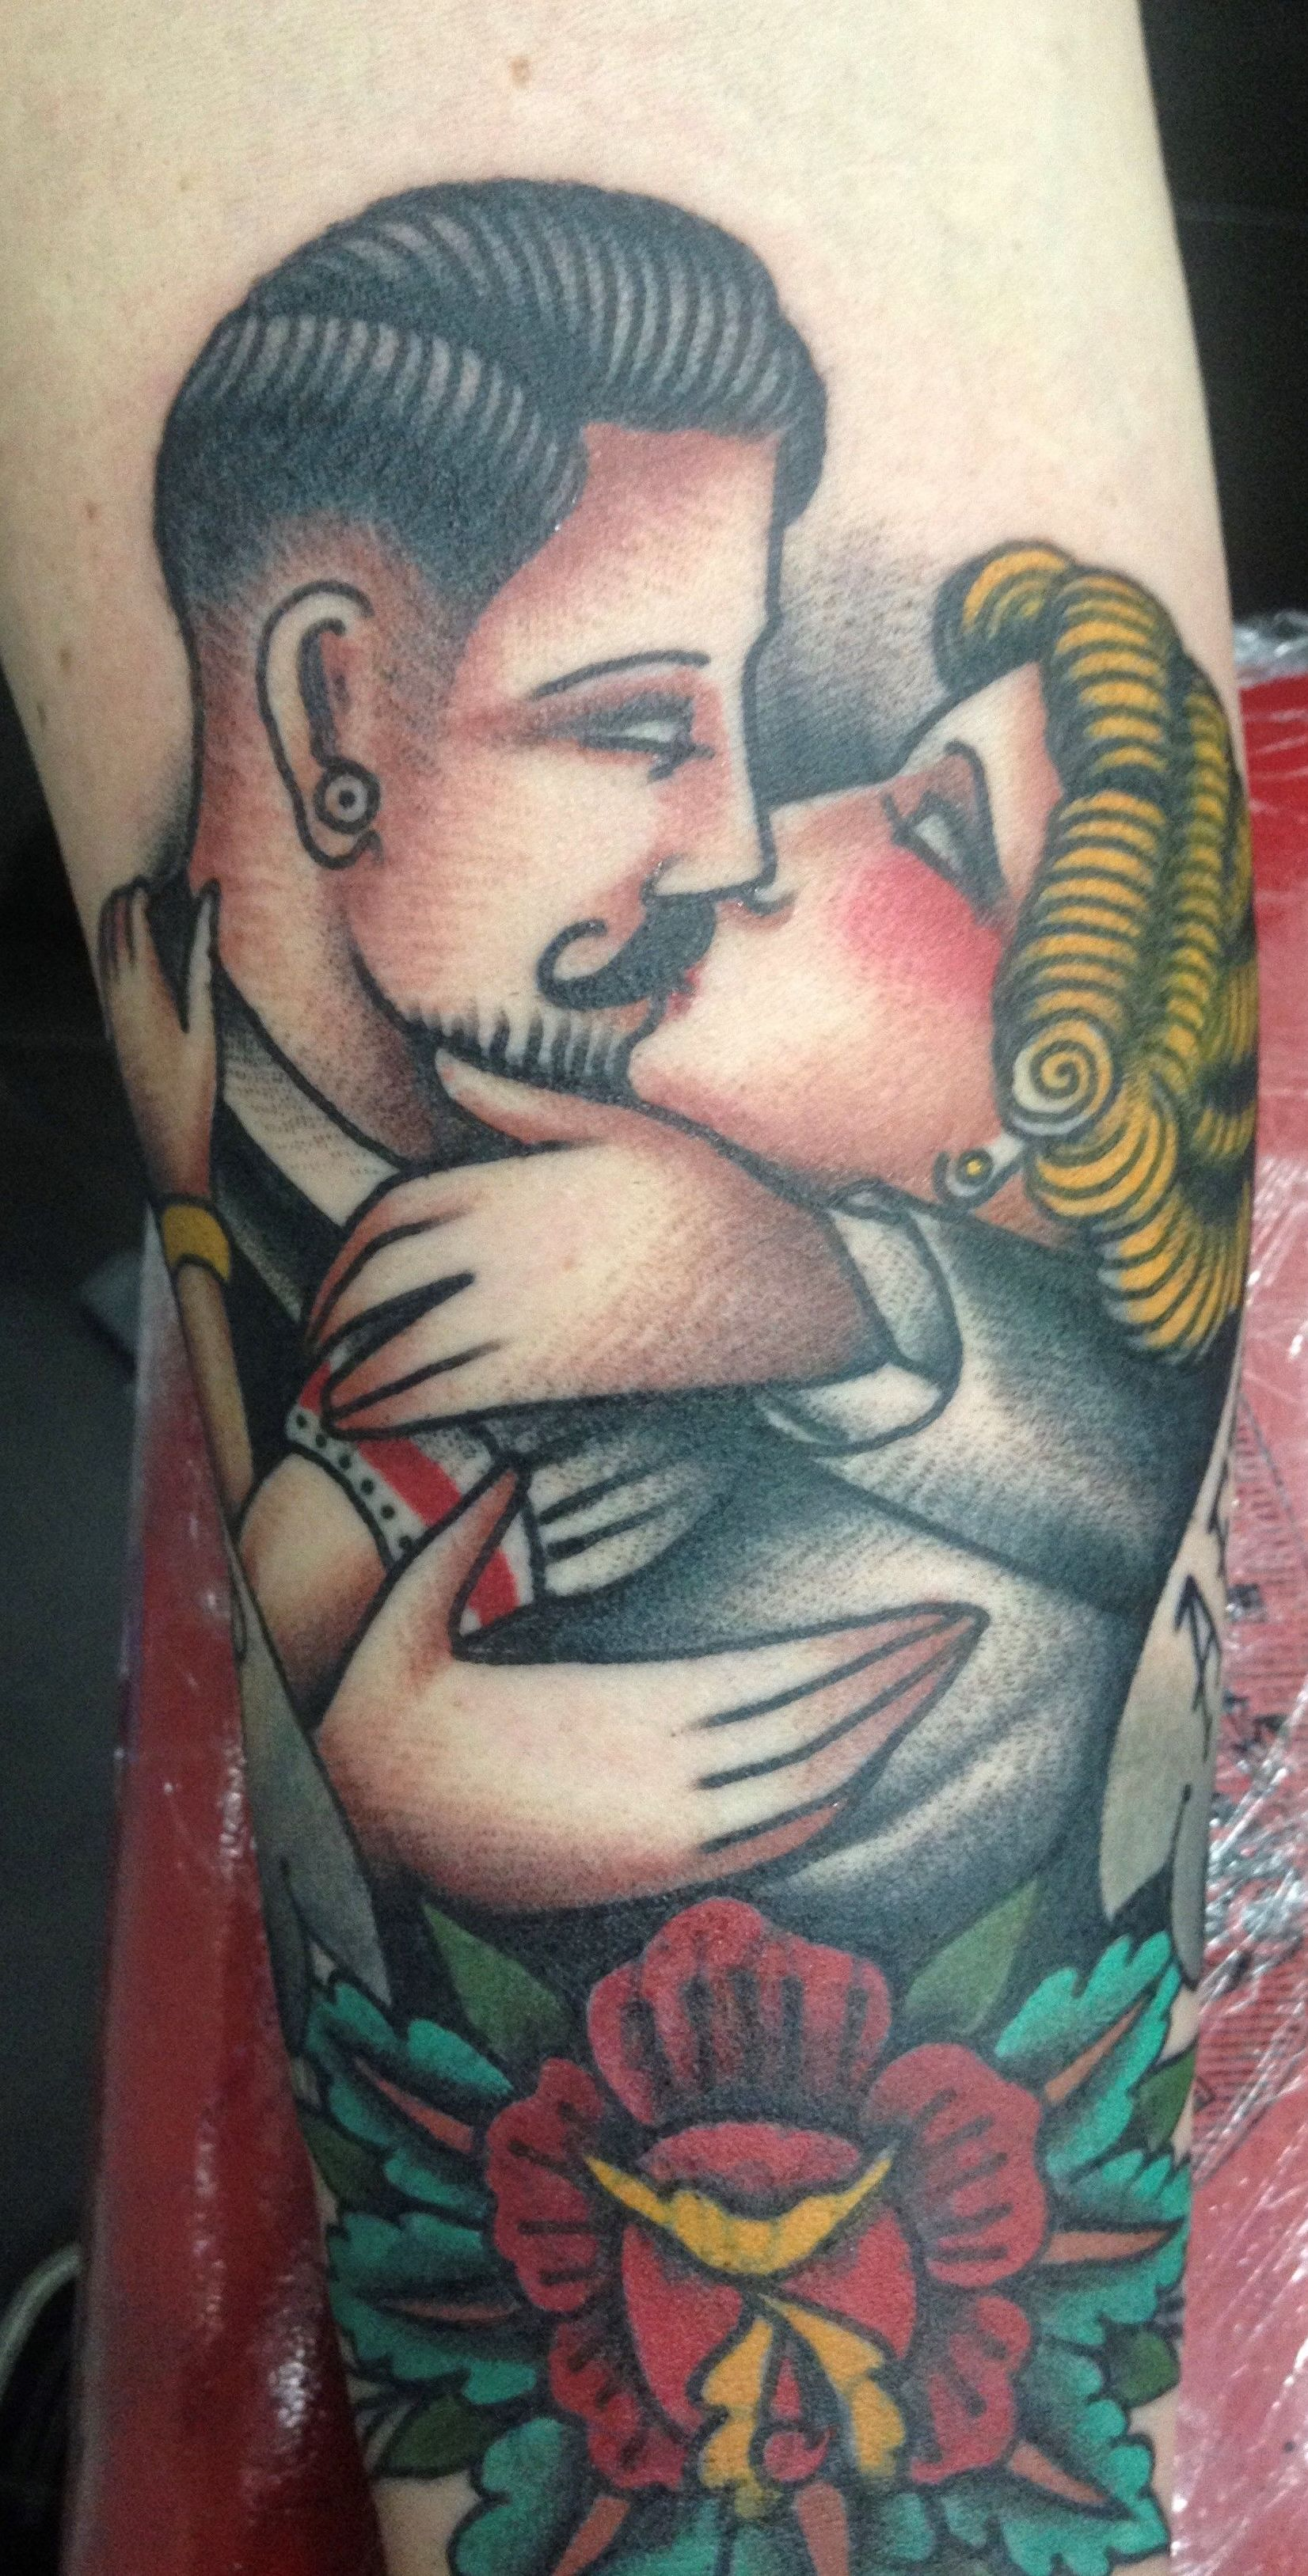 Foto 7 de Tatuajes en Madrid | True Love Tattoo